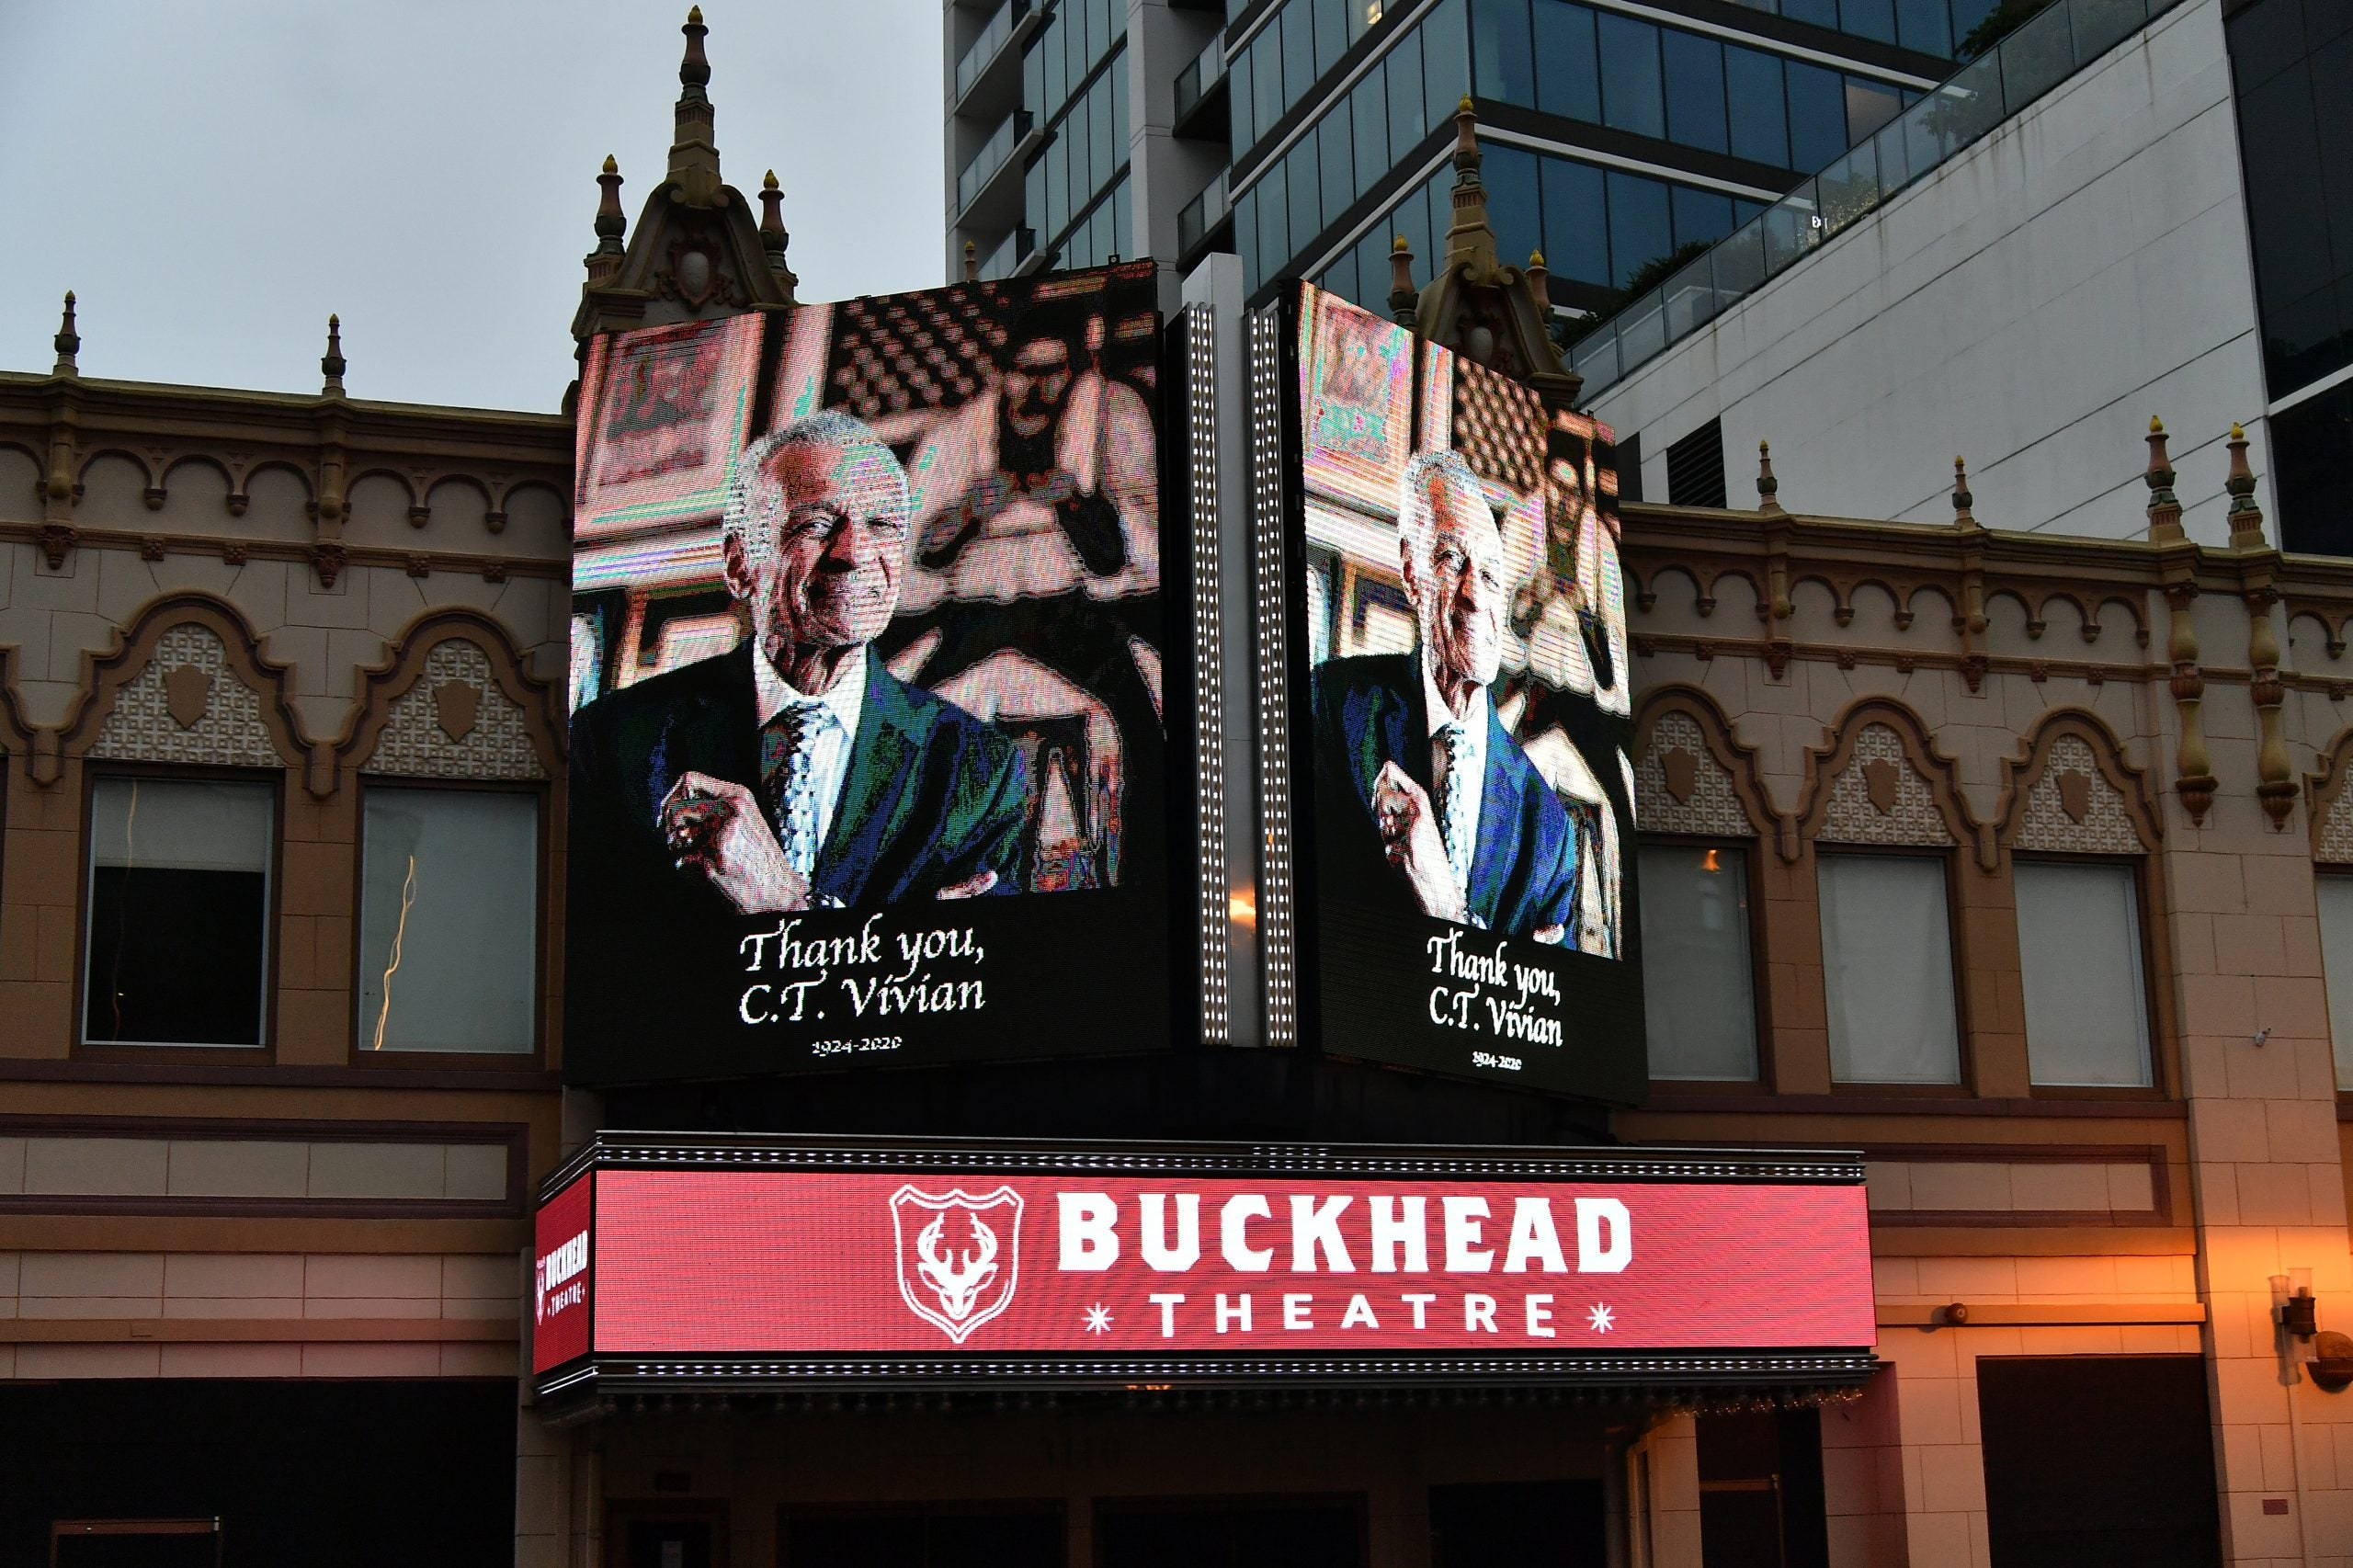 """ATLANTA, GEORGIA - JULY 21:  The Buckhead Theatre marquee displays """"Thank you, C.T. Vivian"""" on July 21, 2020 in Atlanta, Georgia. (Photo by Paras Griffin/Getty Images)"""